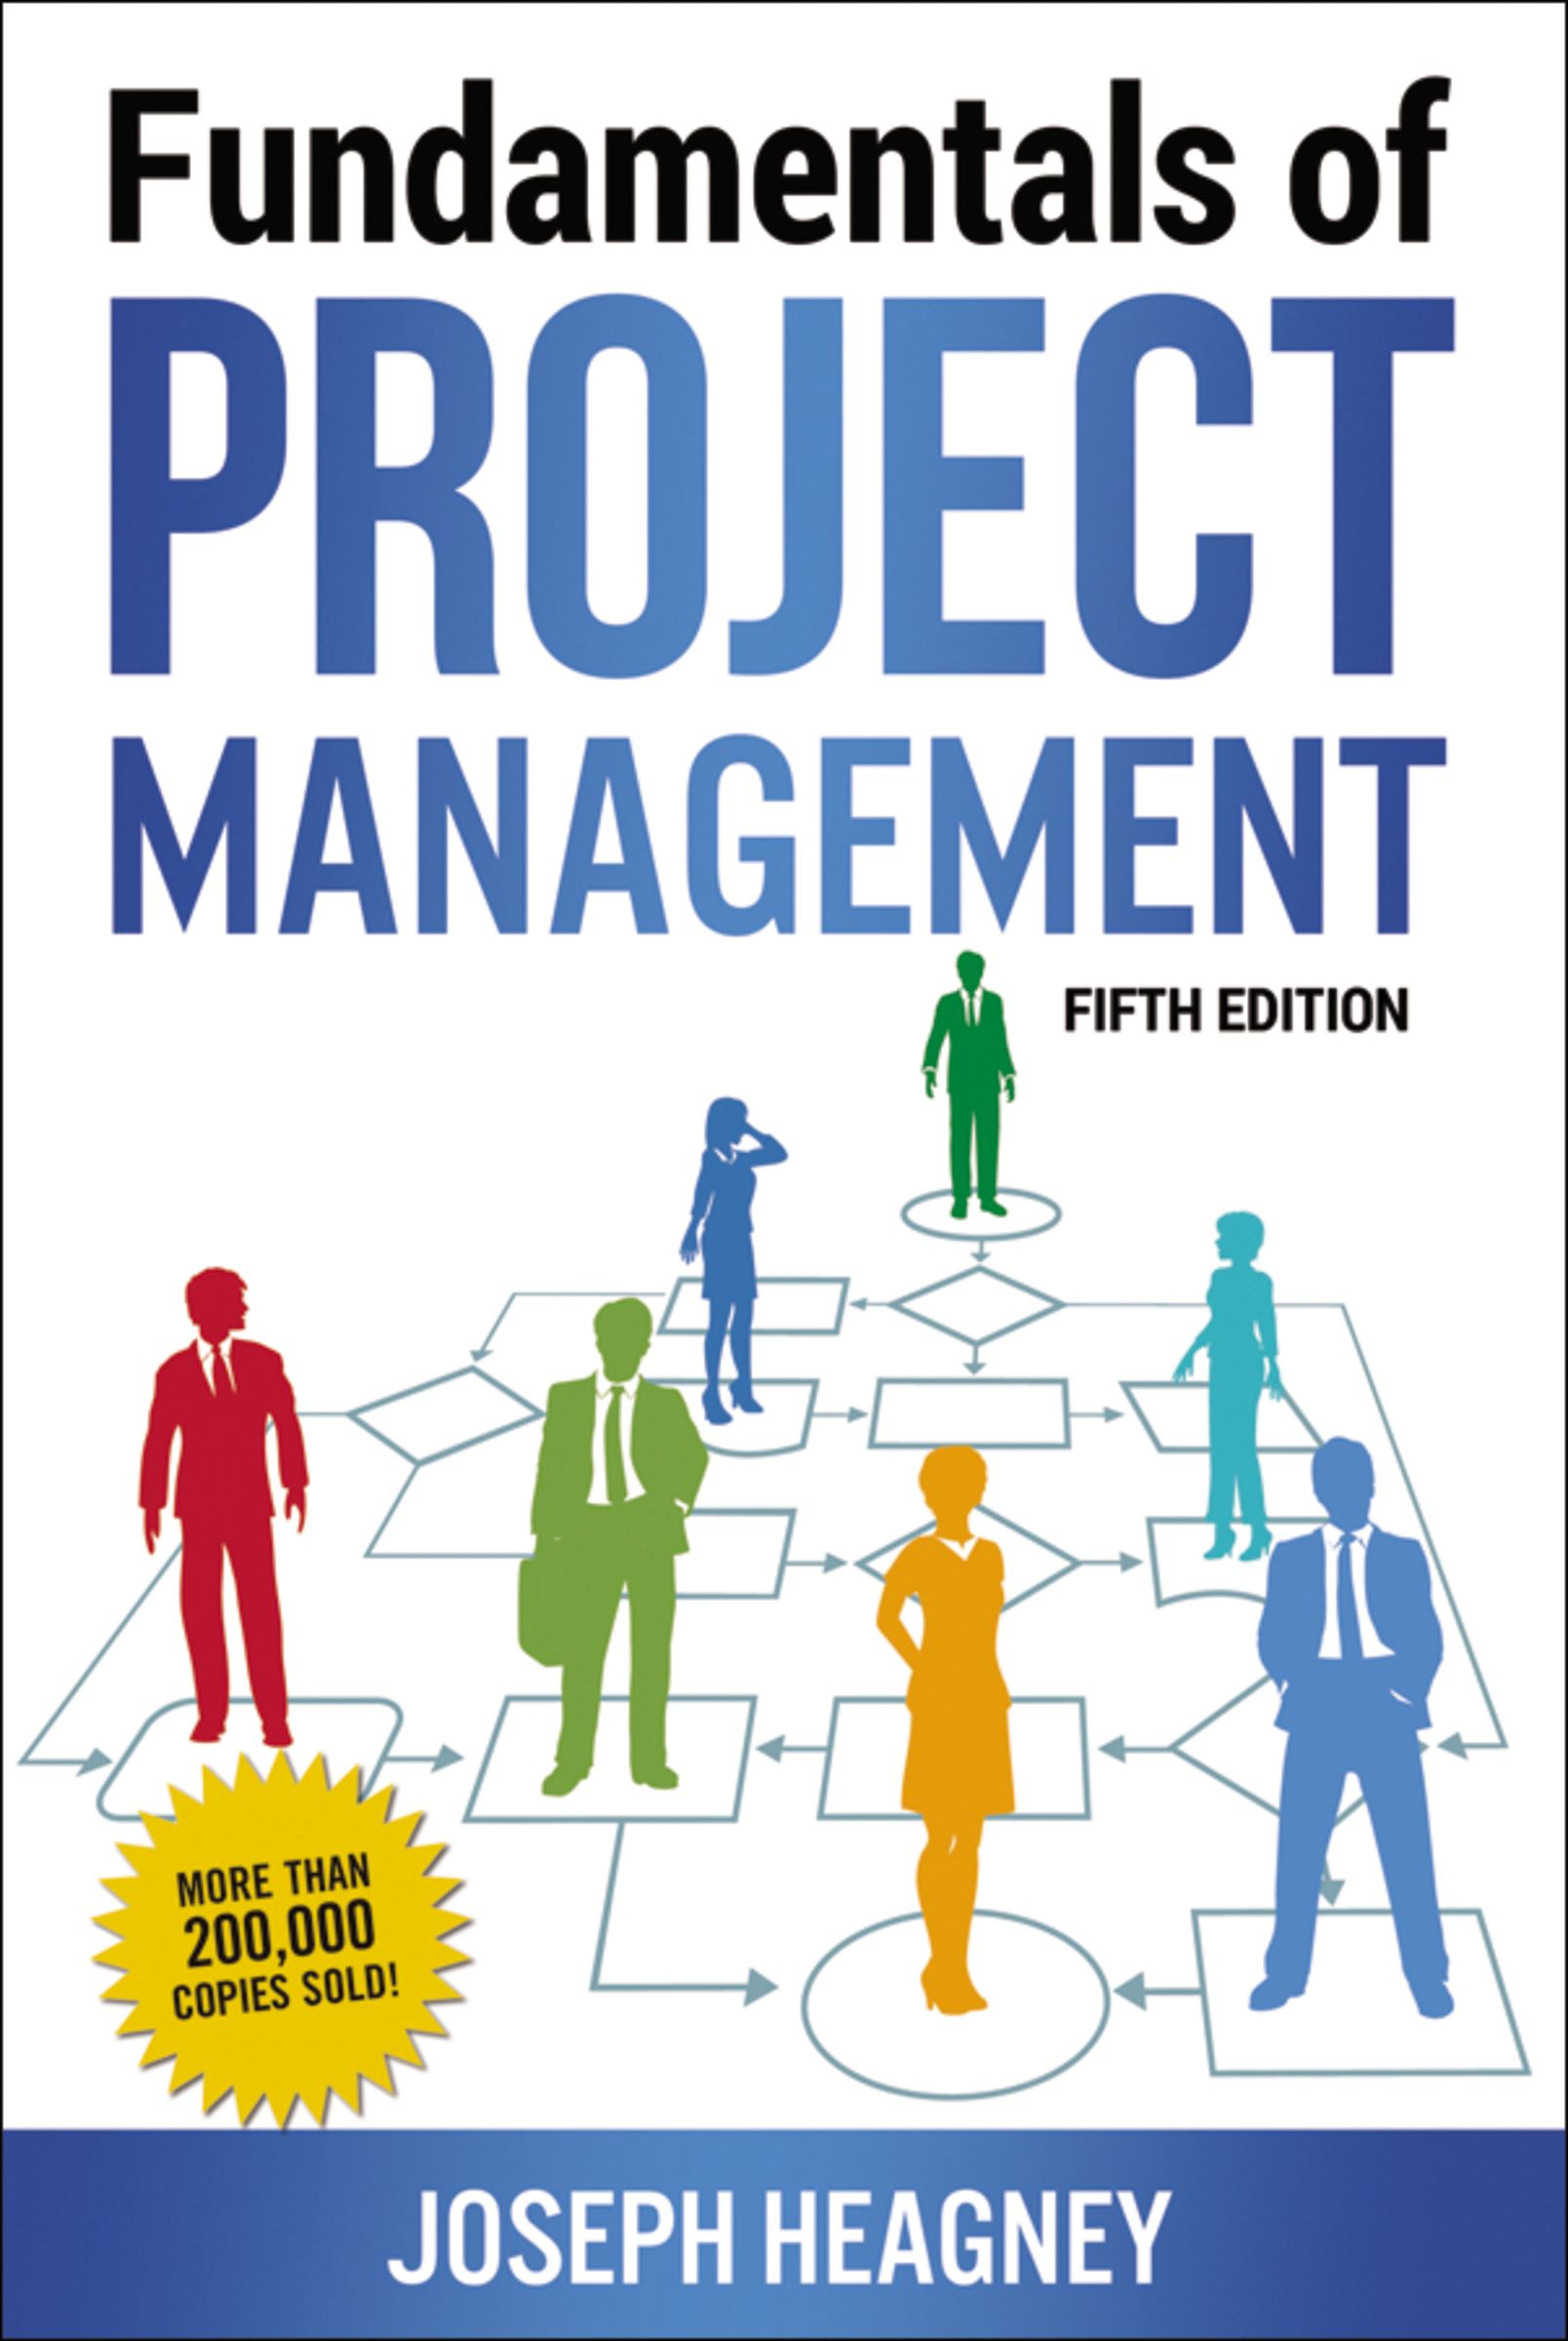 Download Ebook Fundamentals of Project Management (5th ed.) by Joseph Heagney Pdf